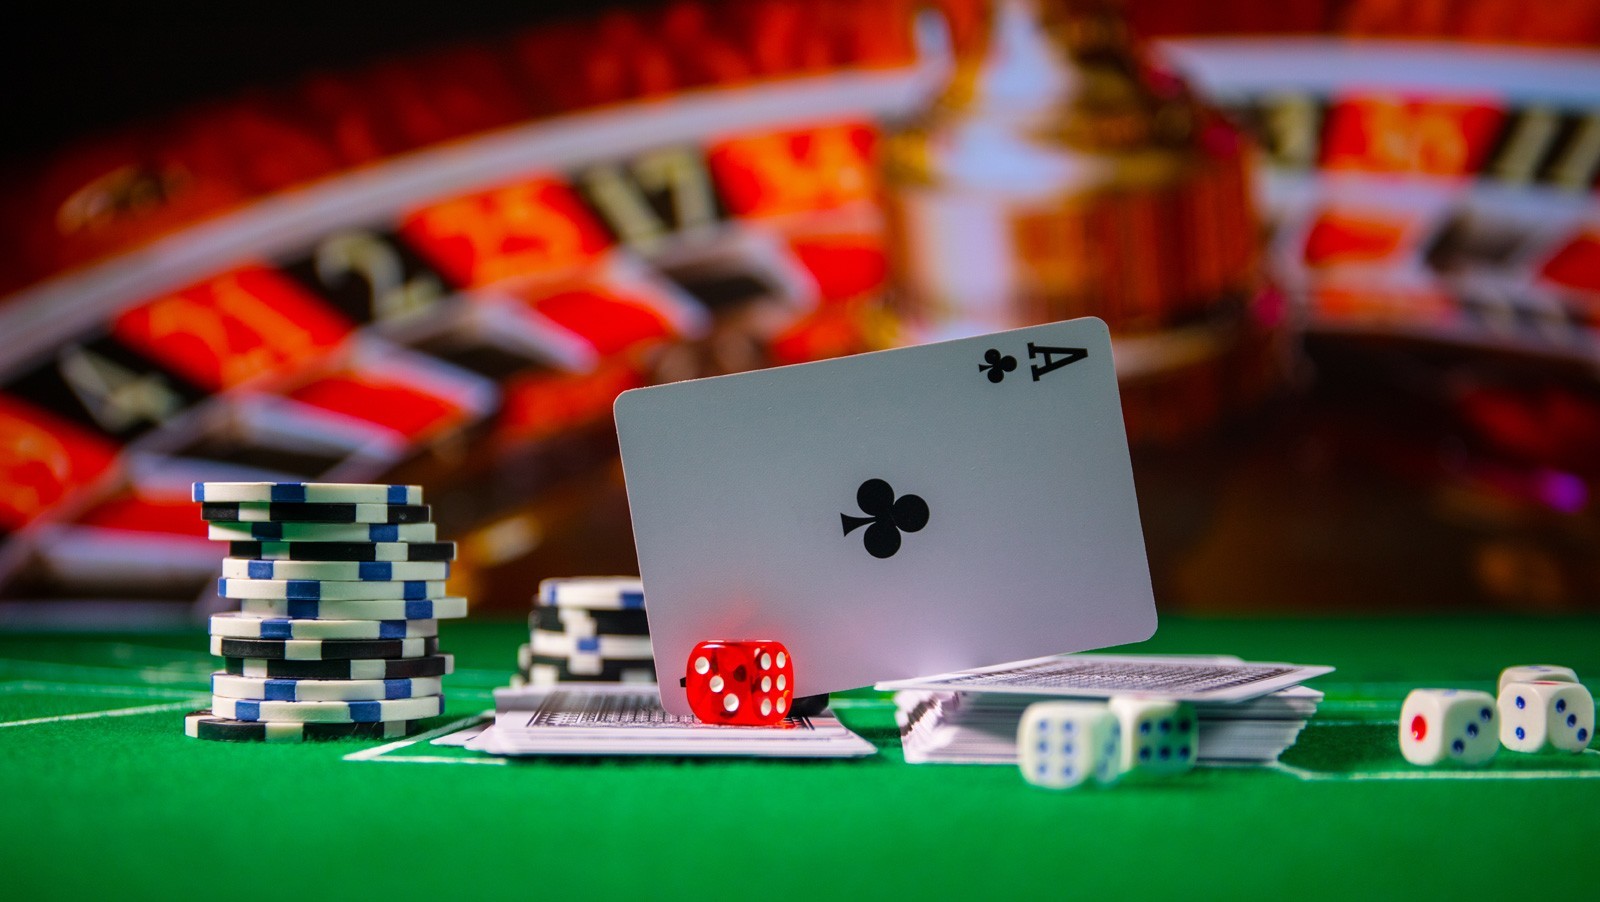 Enjoy Free Online Casino Games in Complete Comfort